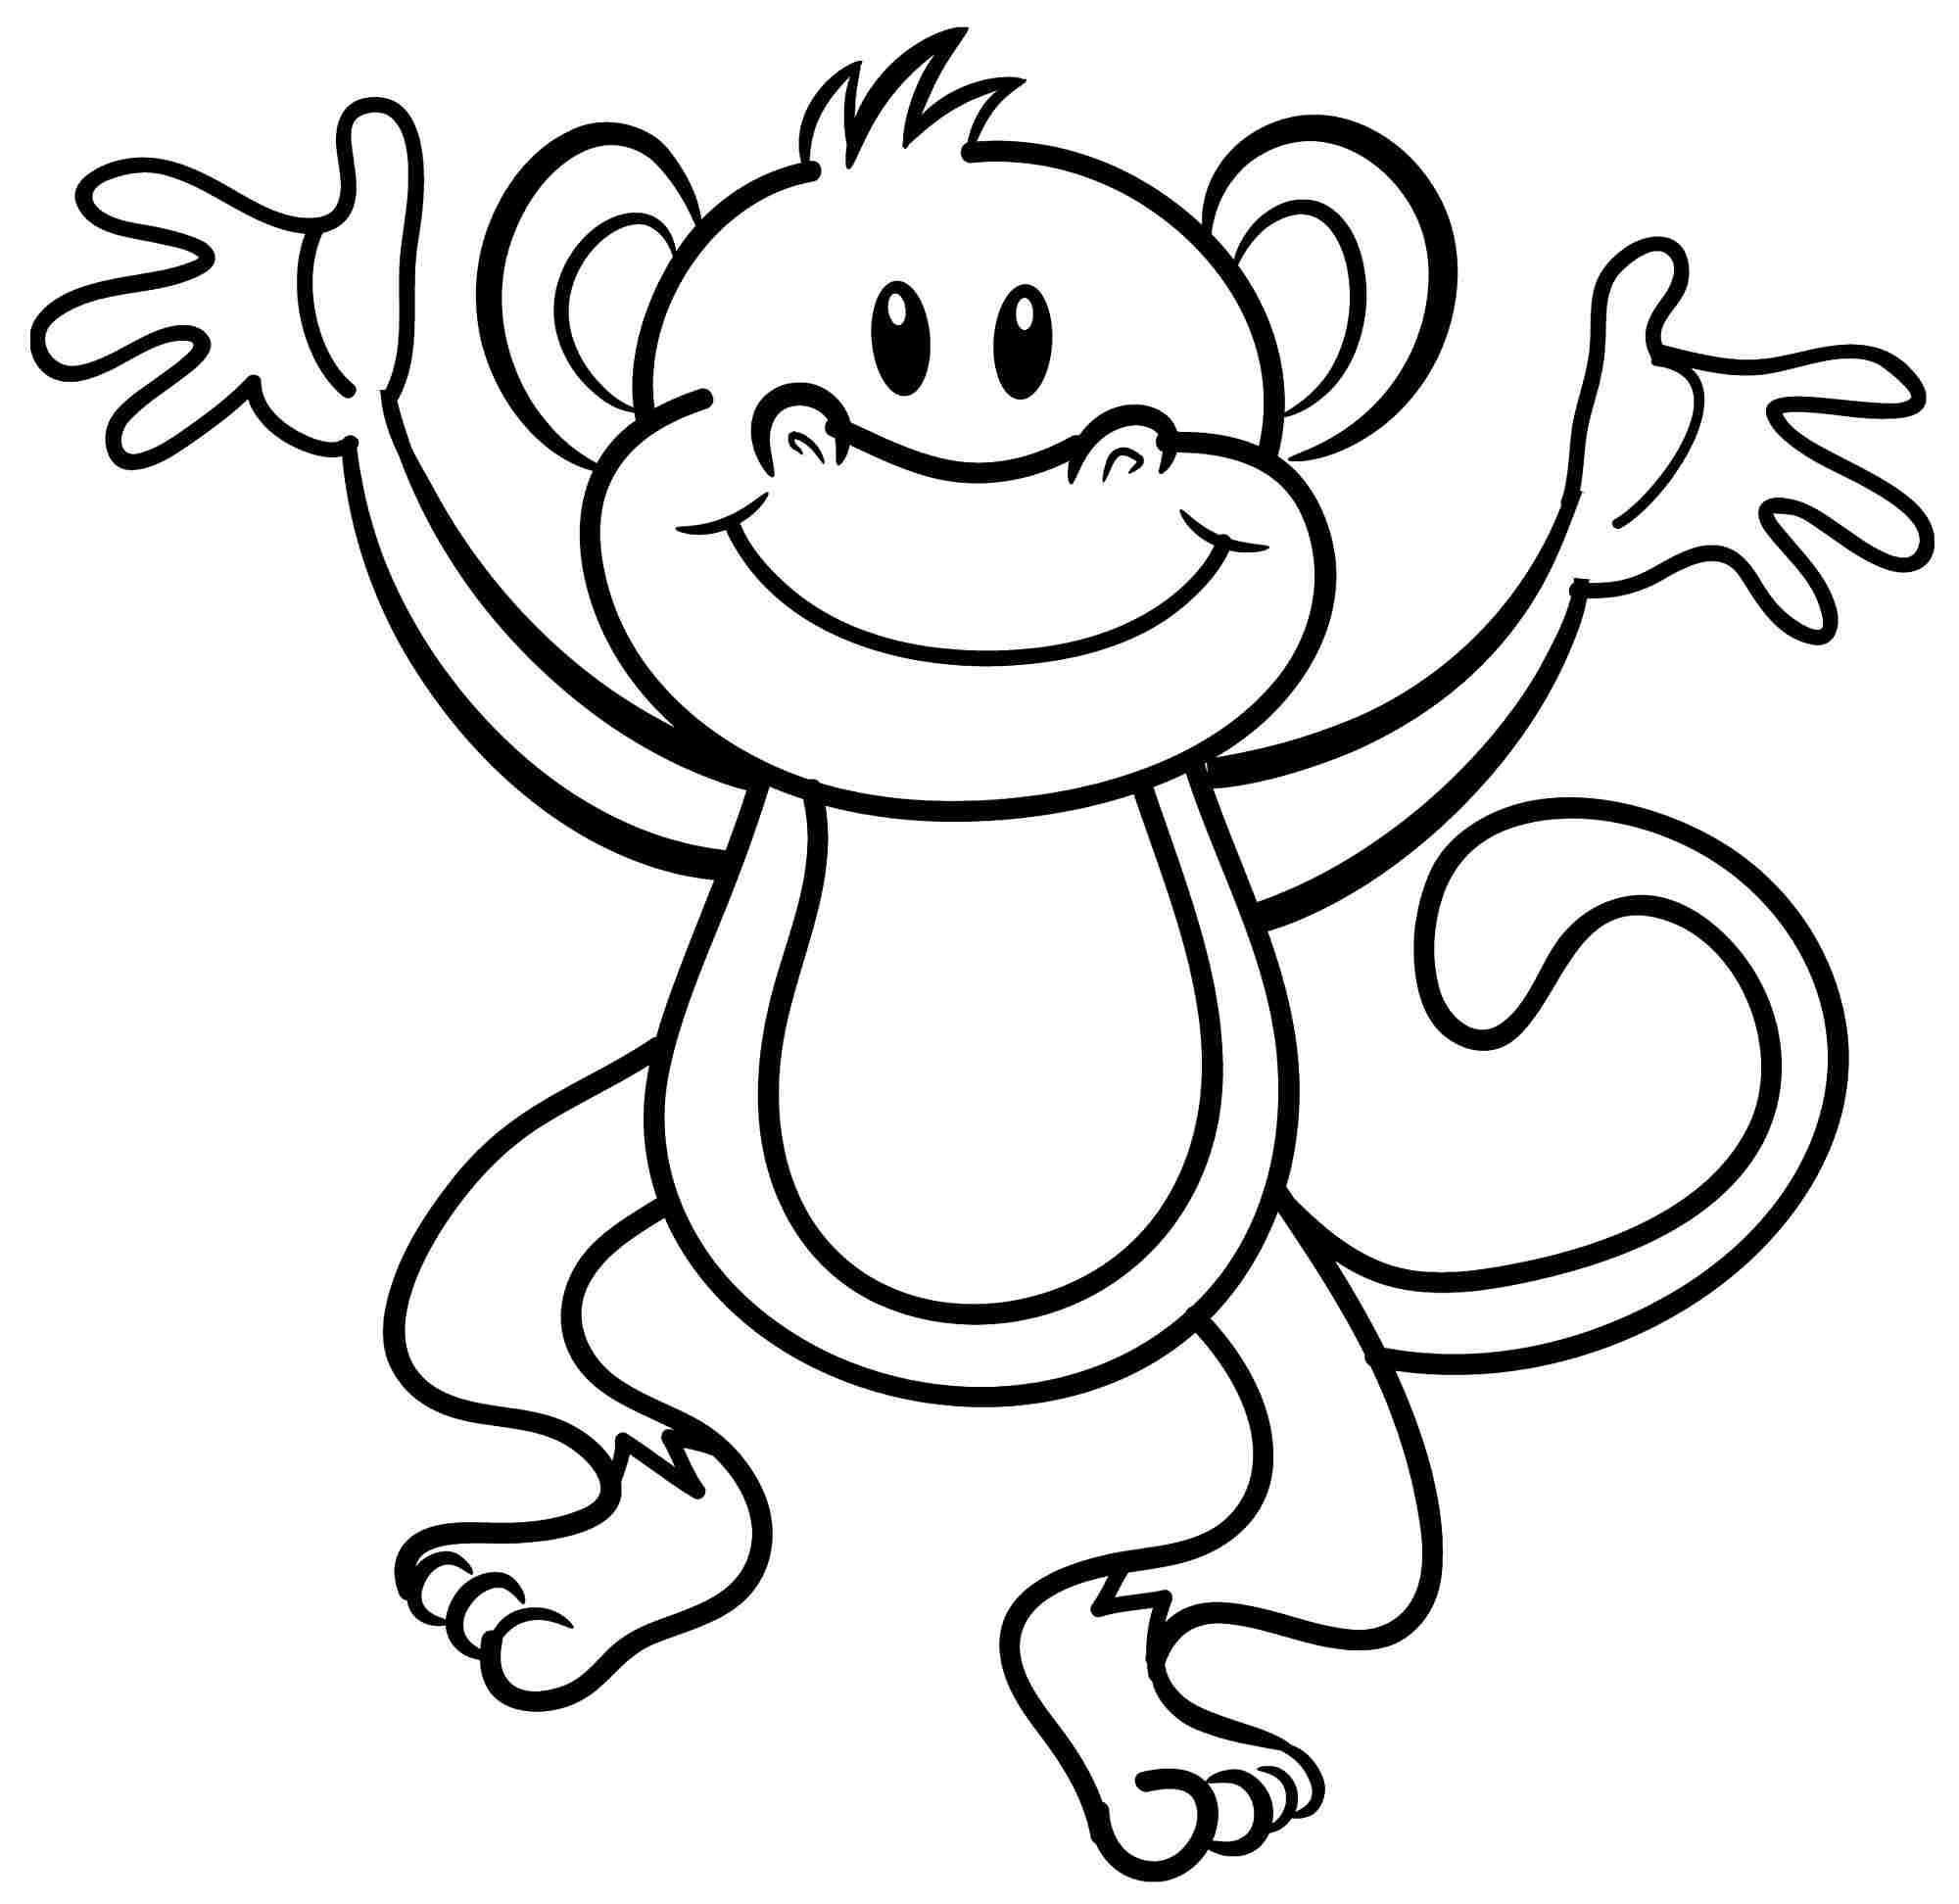 2000x1944 Basic Coloring Pages For Adults Simple Colorings